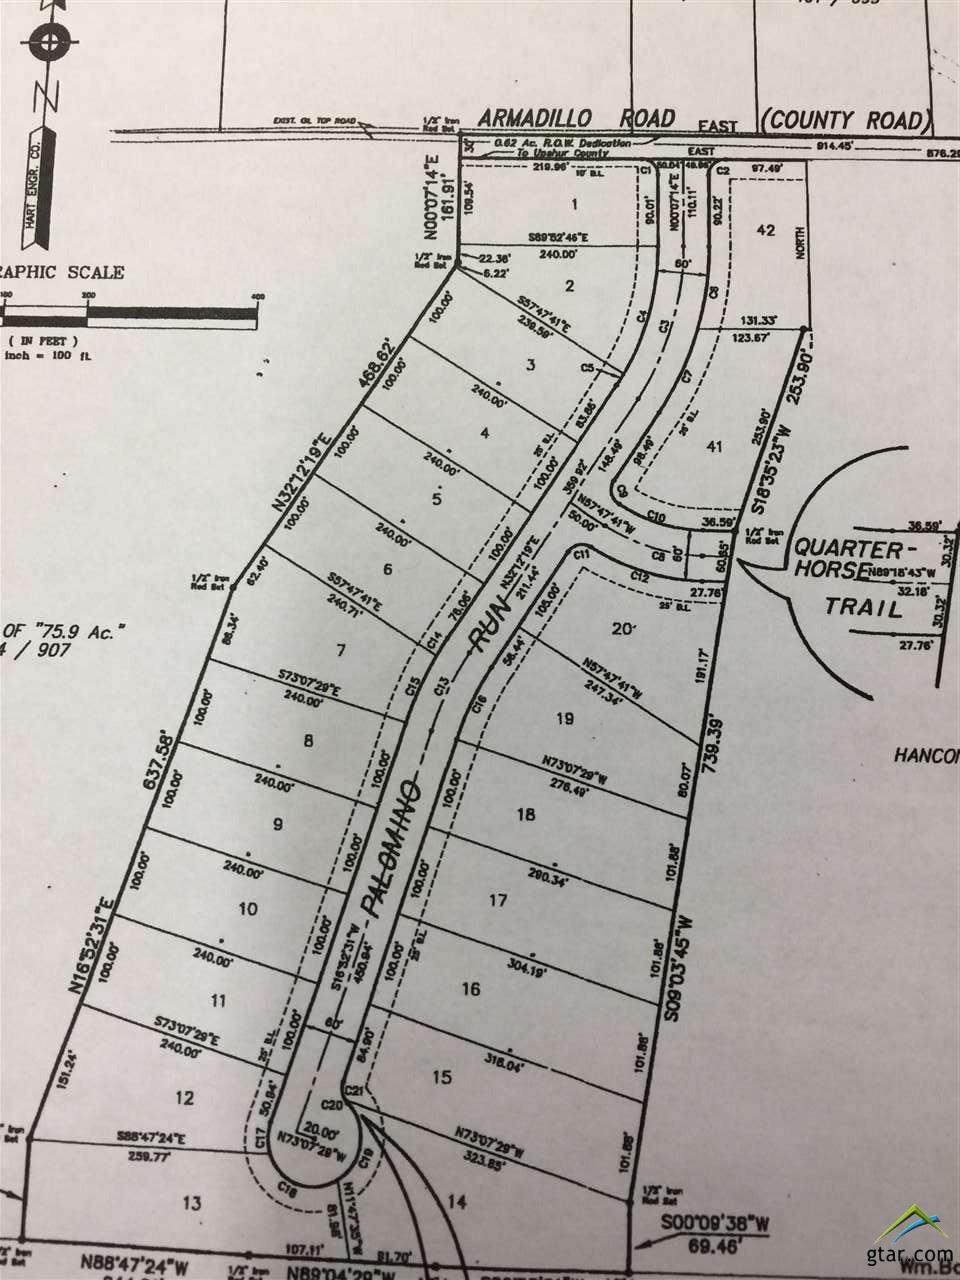 TBD Armadillo Road - Lot 16 - Meadow Springs Subdivision - Photo 1